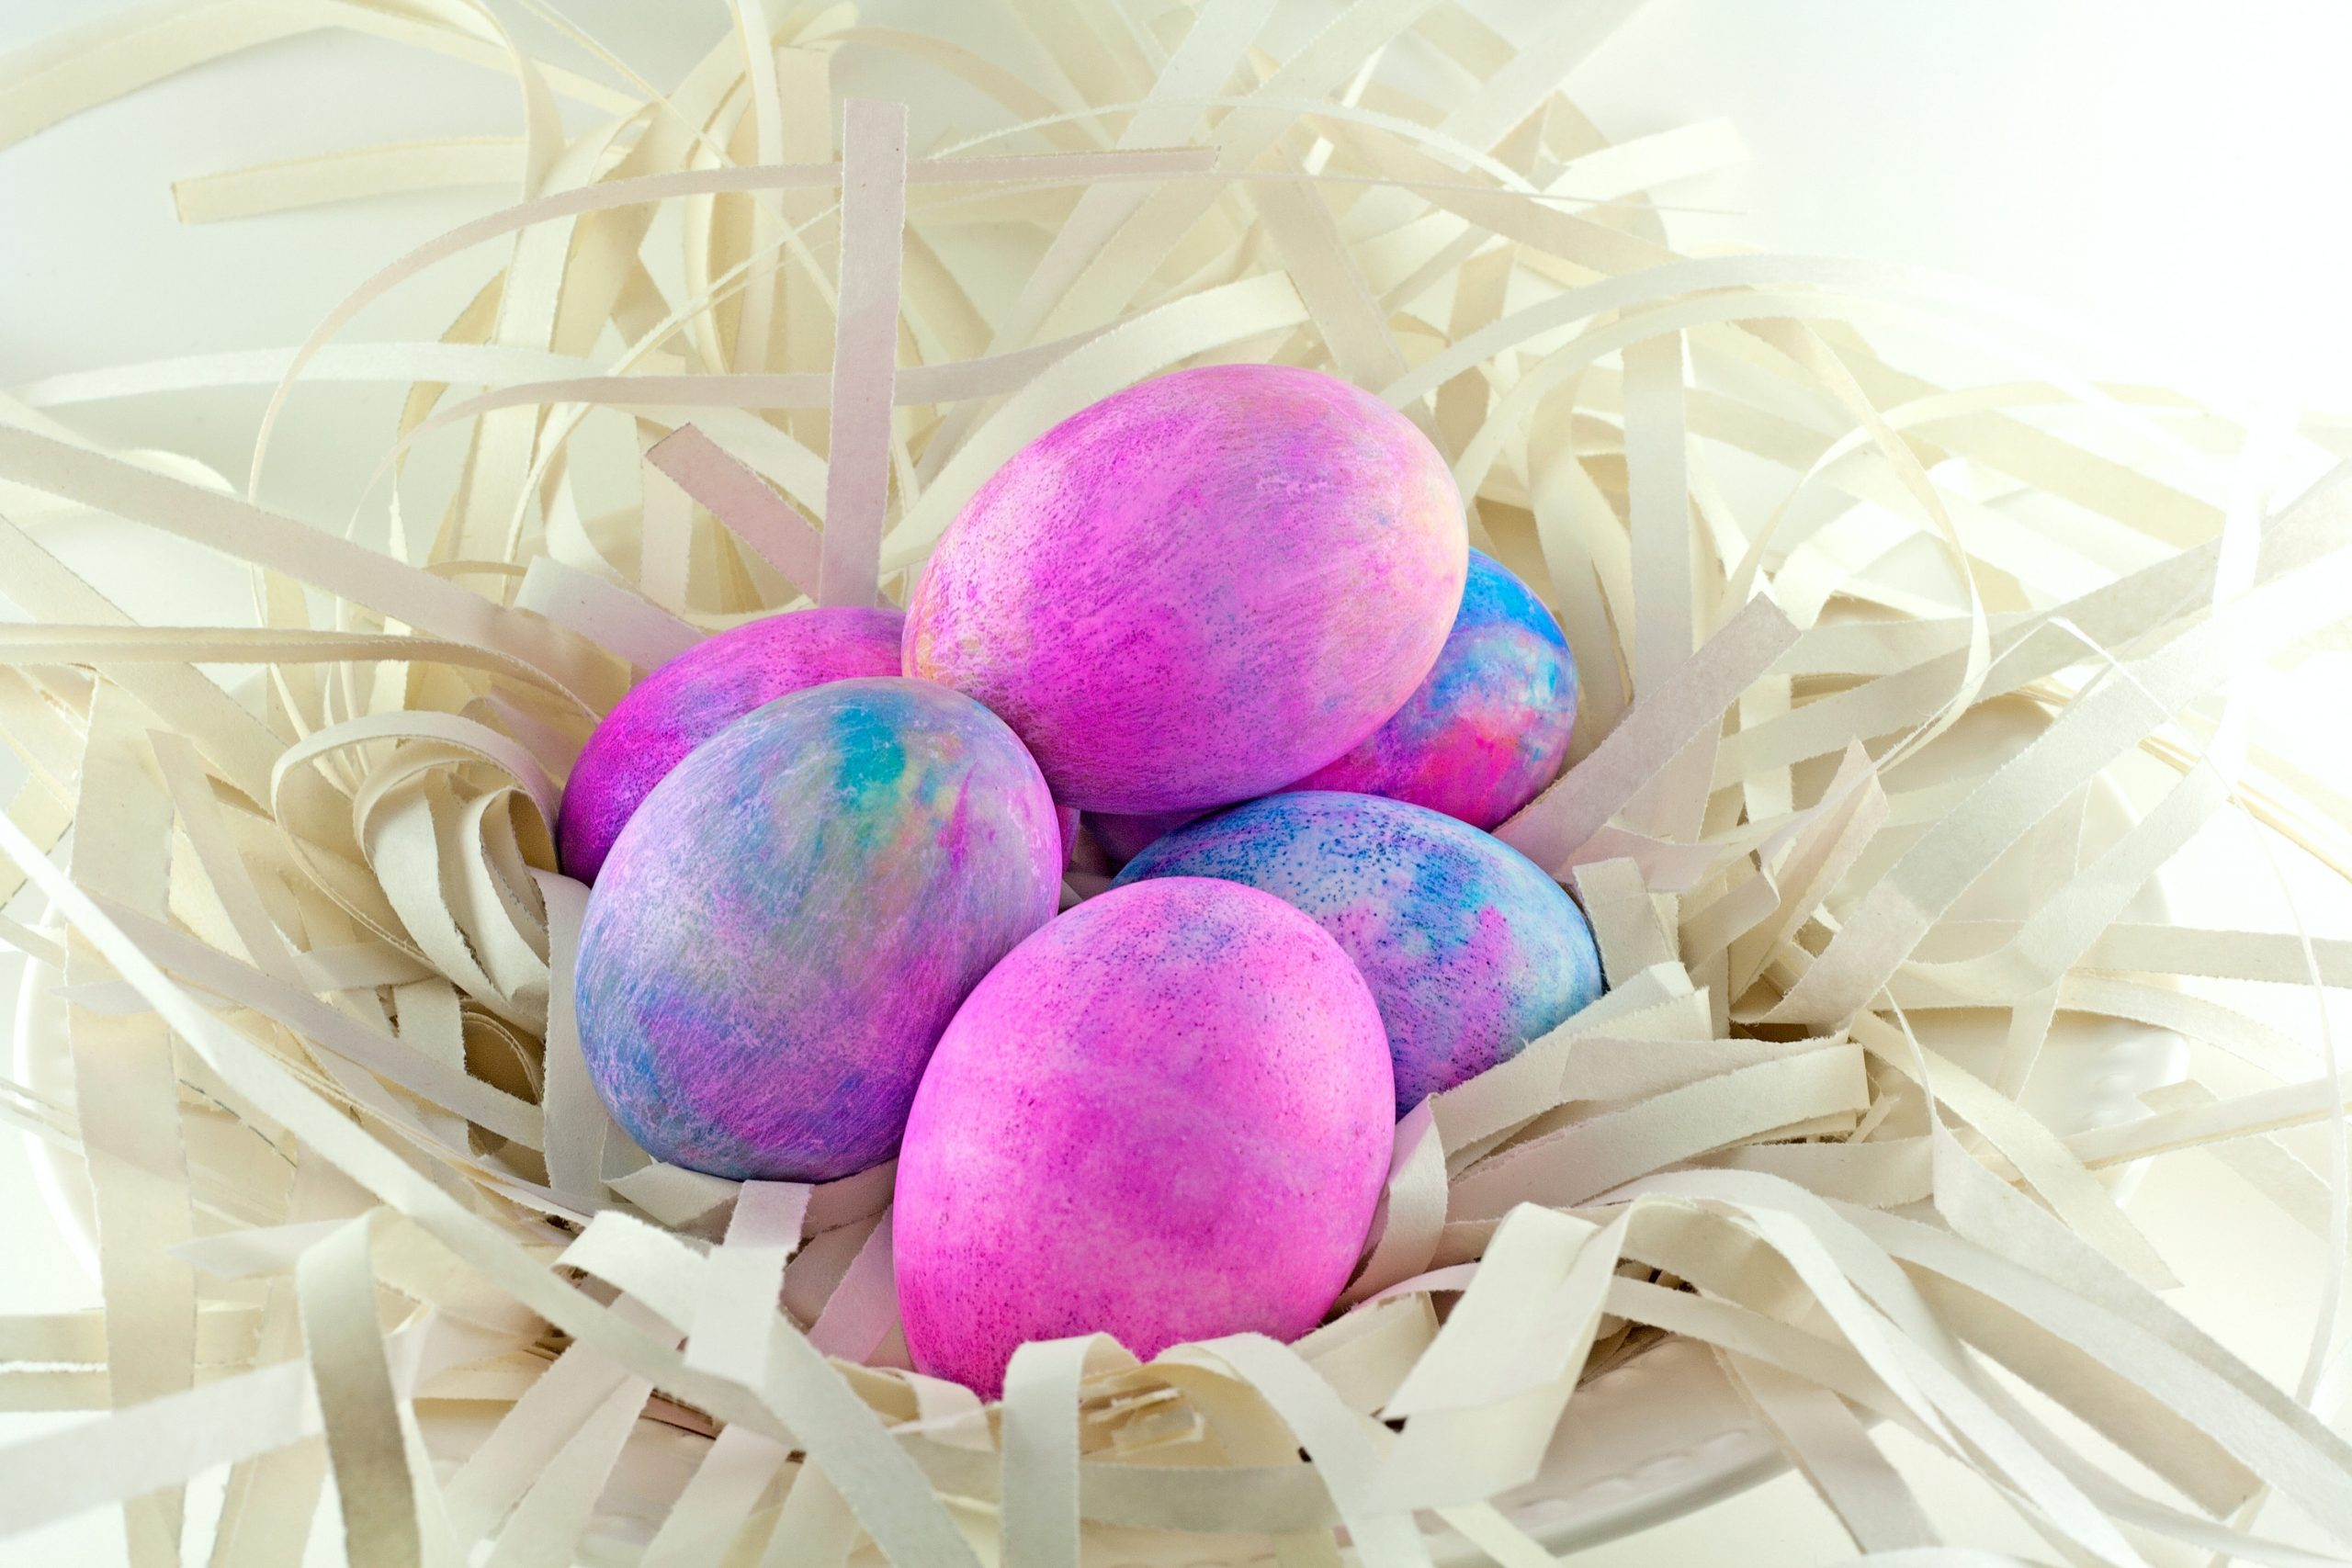 A basket full of shaving cream Easter eggs. The eggs have a mix of pink and blue. Shaving cream Easter eggs are very unique and artistic looking.